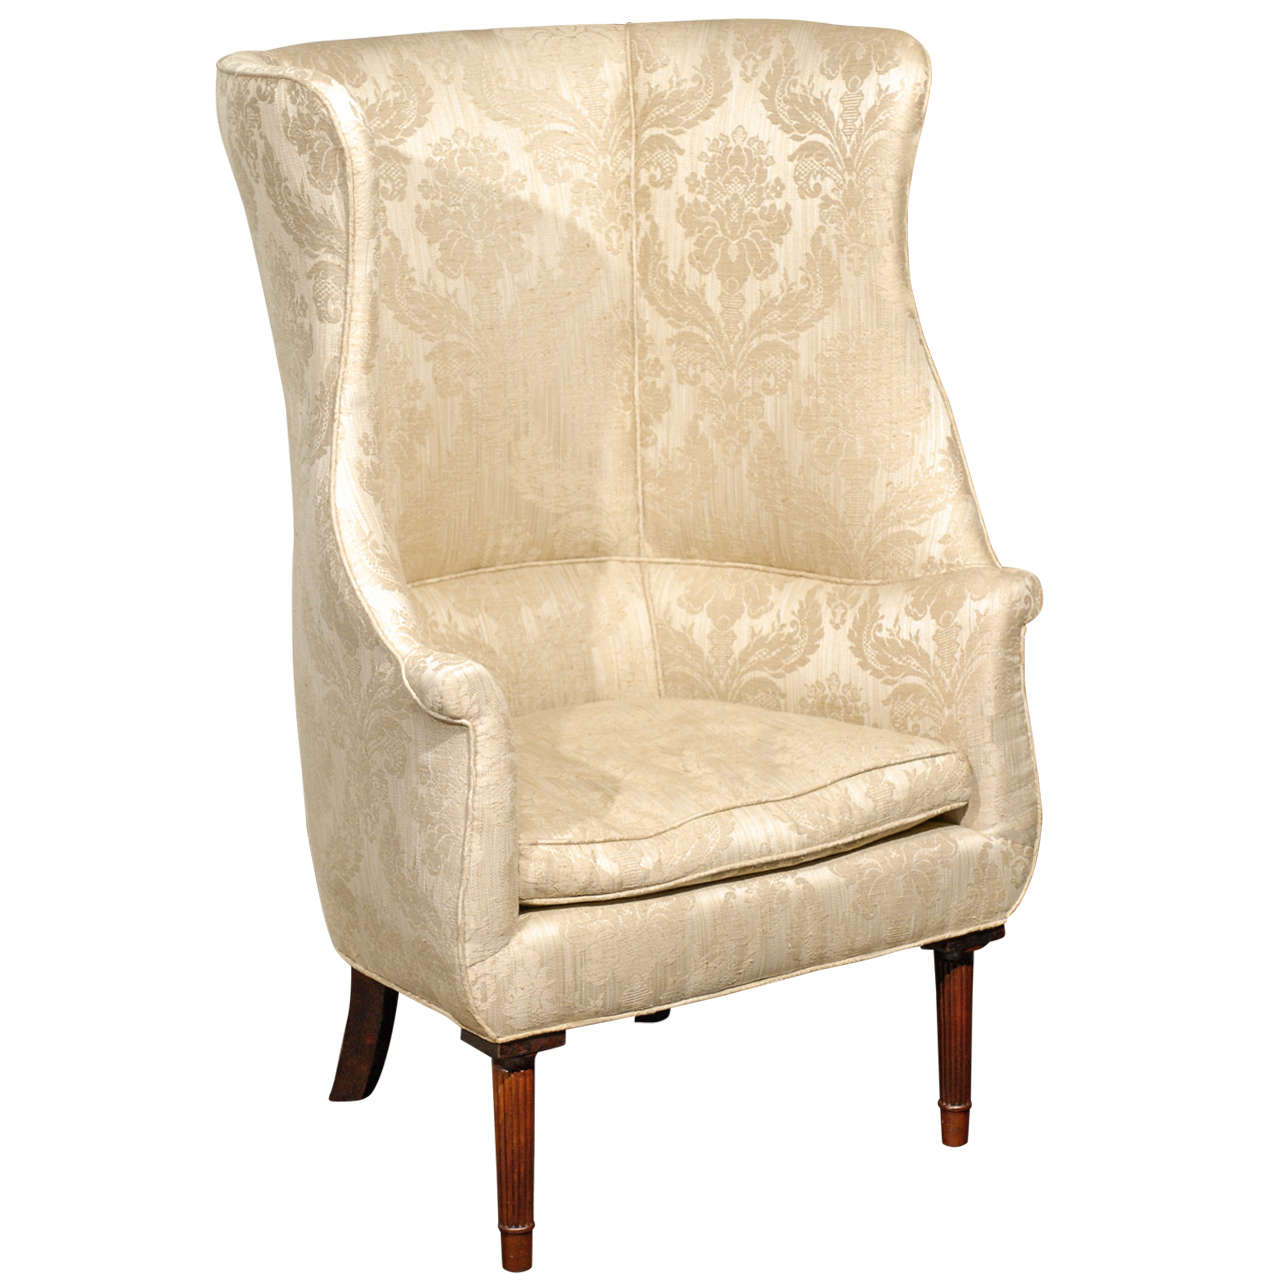 1920s Large Barrel Back Upholstered Wing Chair Raised On Four Reeded Legs English Accent Antiques